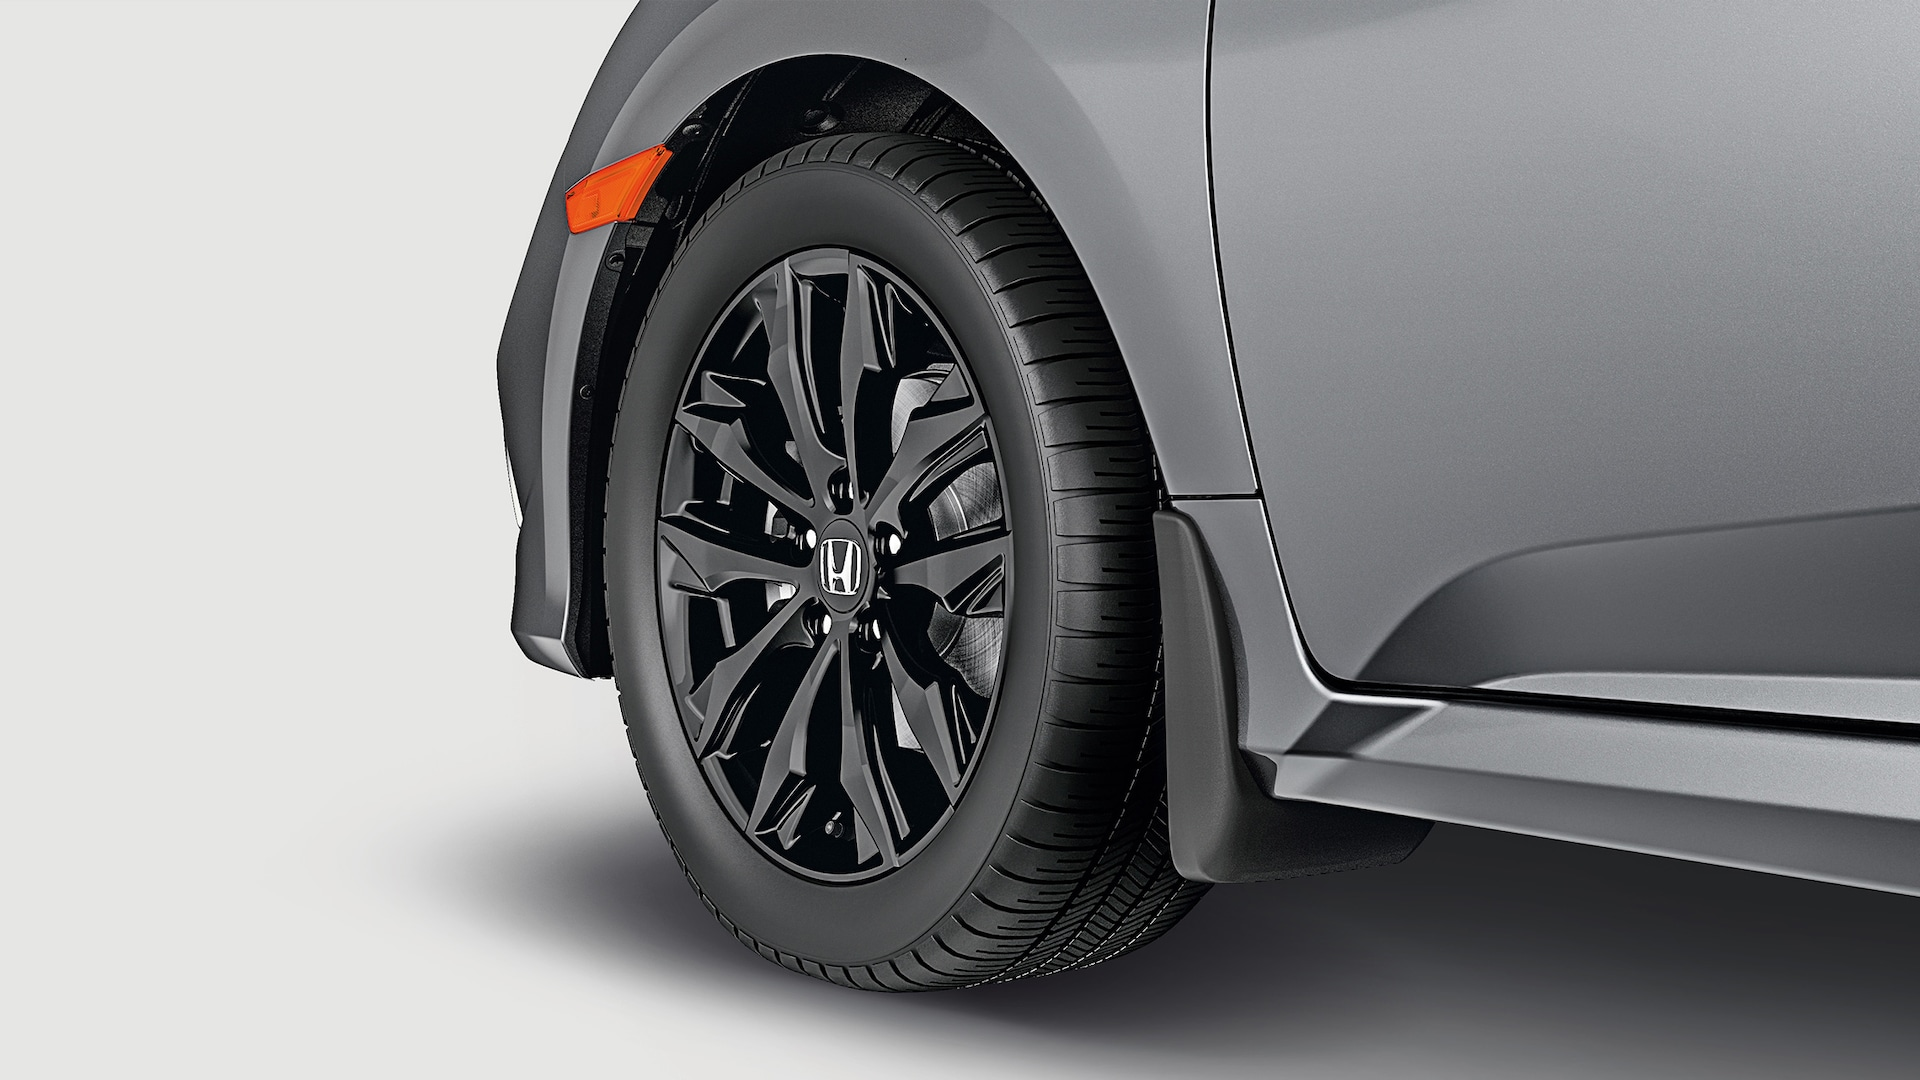 17-inch black alloy wheel detail on the 2021 Honda Civic Touring Sedan in Modern Steel Metallic.